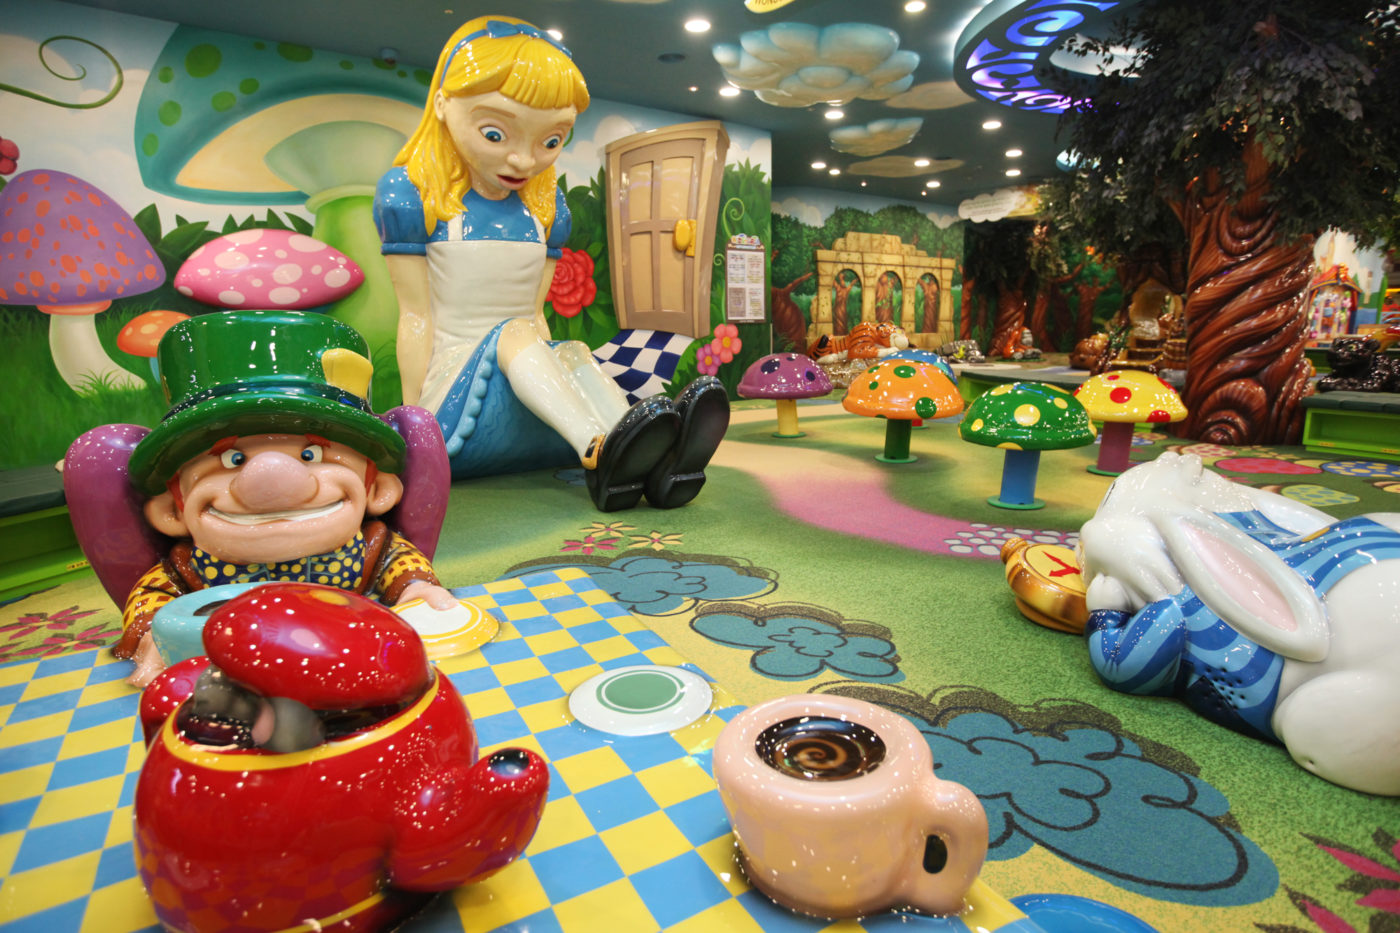 alice in wonderland theme by playtime at the lotte world kidstoria